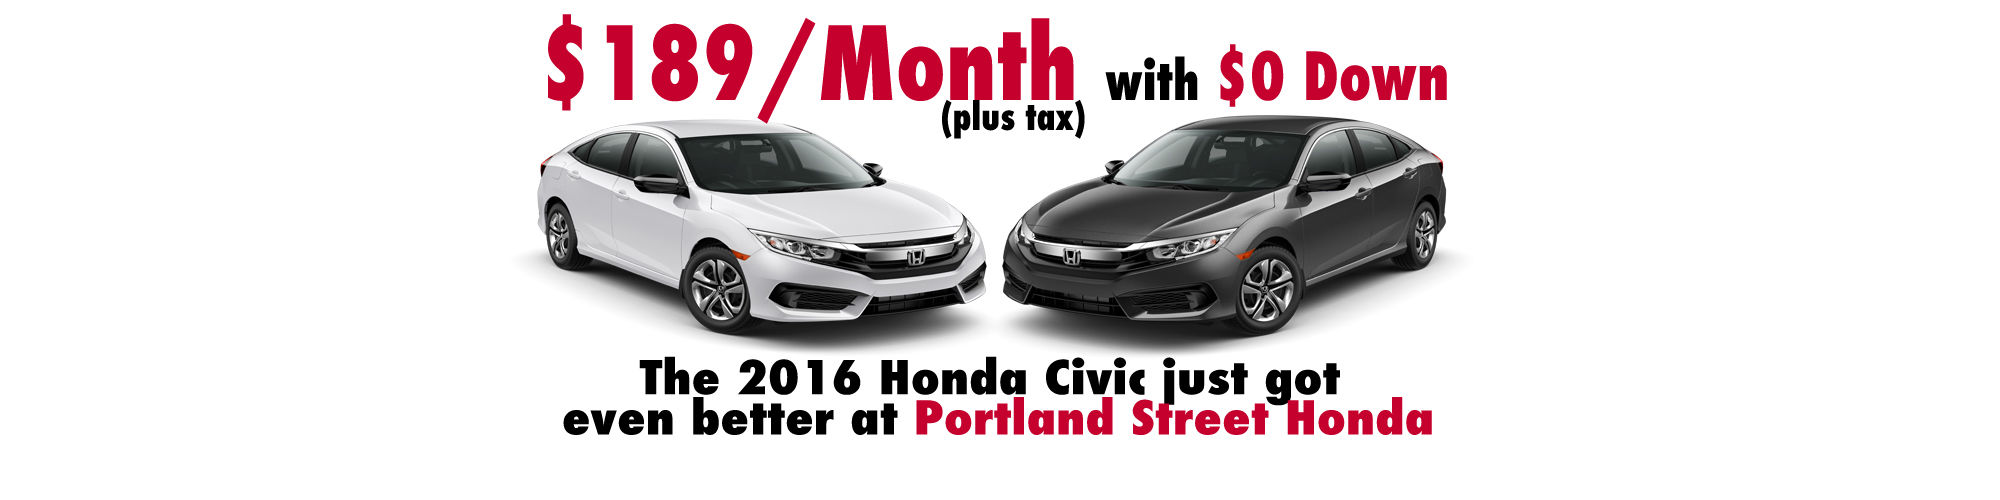 The 2016 Civic just got Better